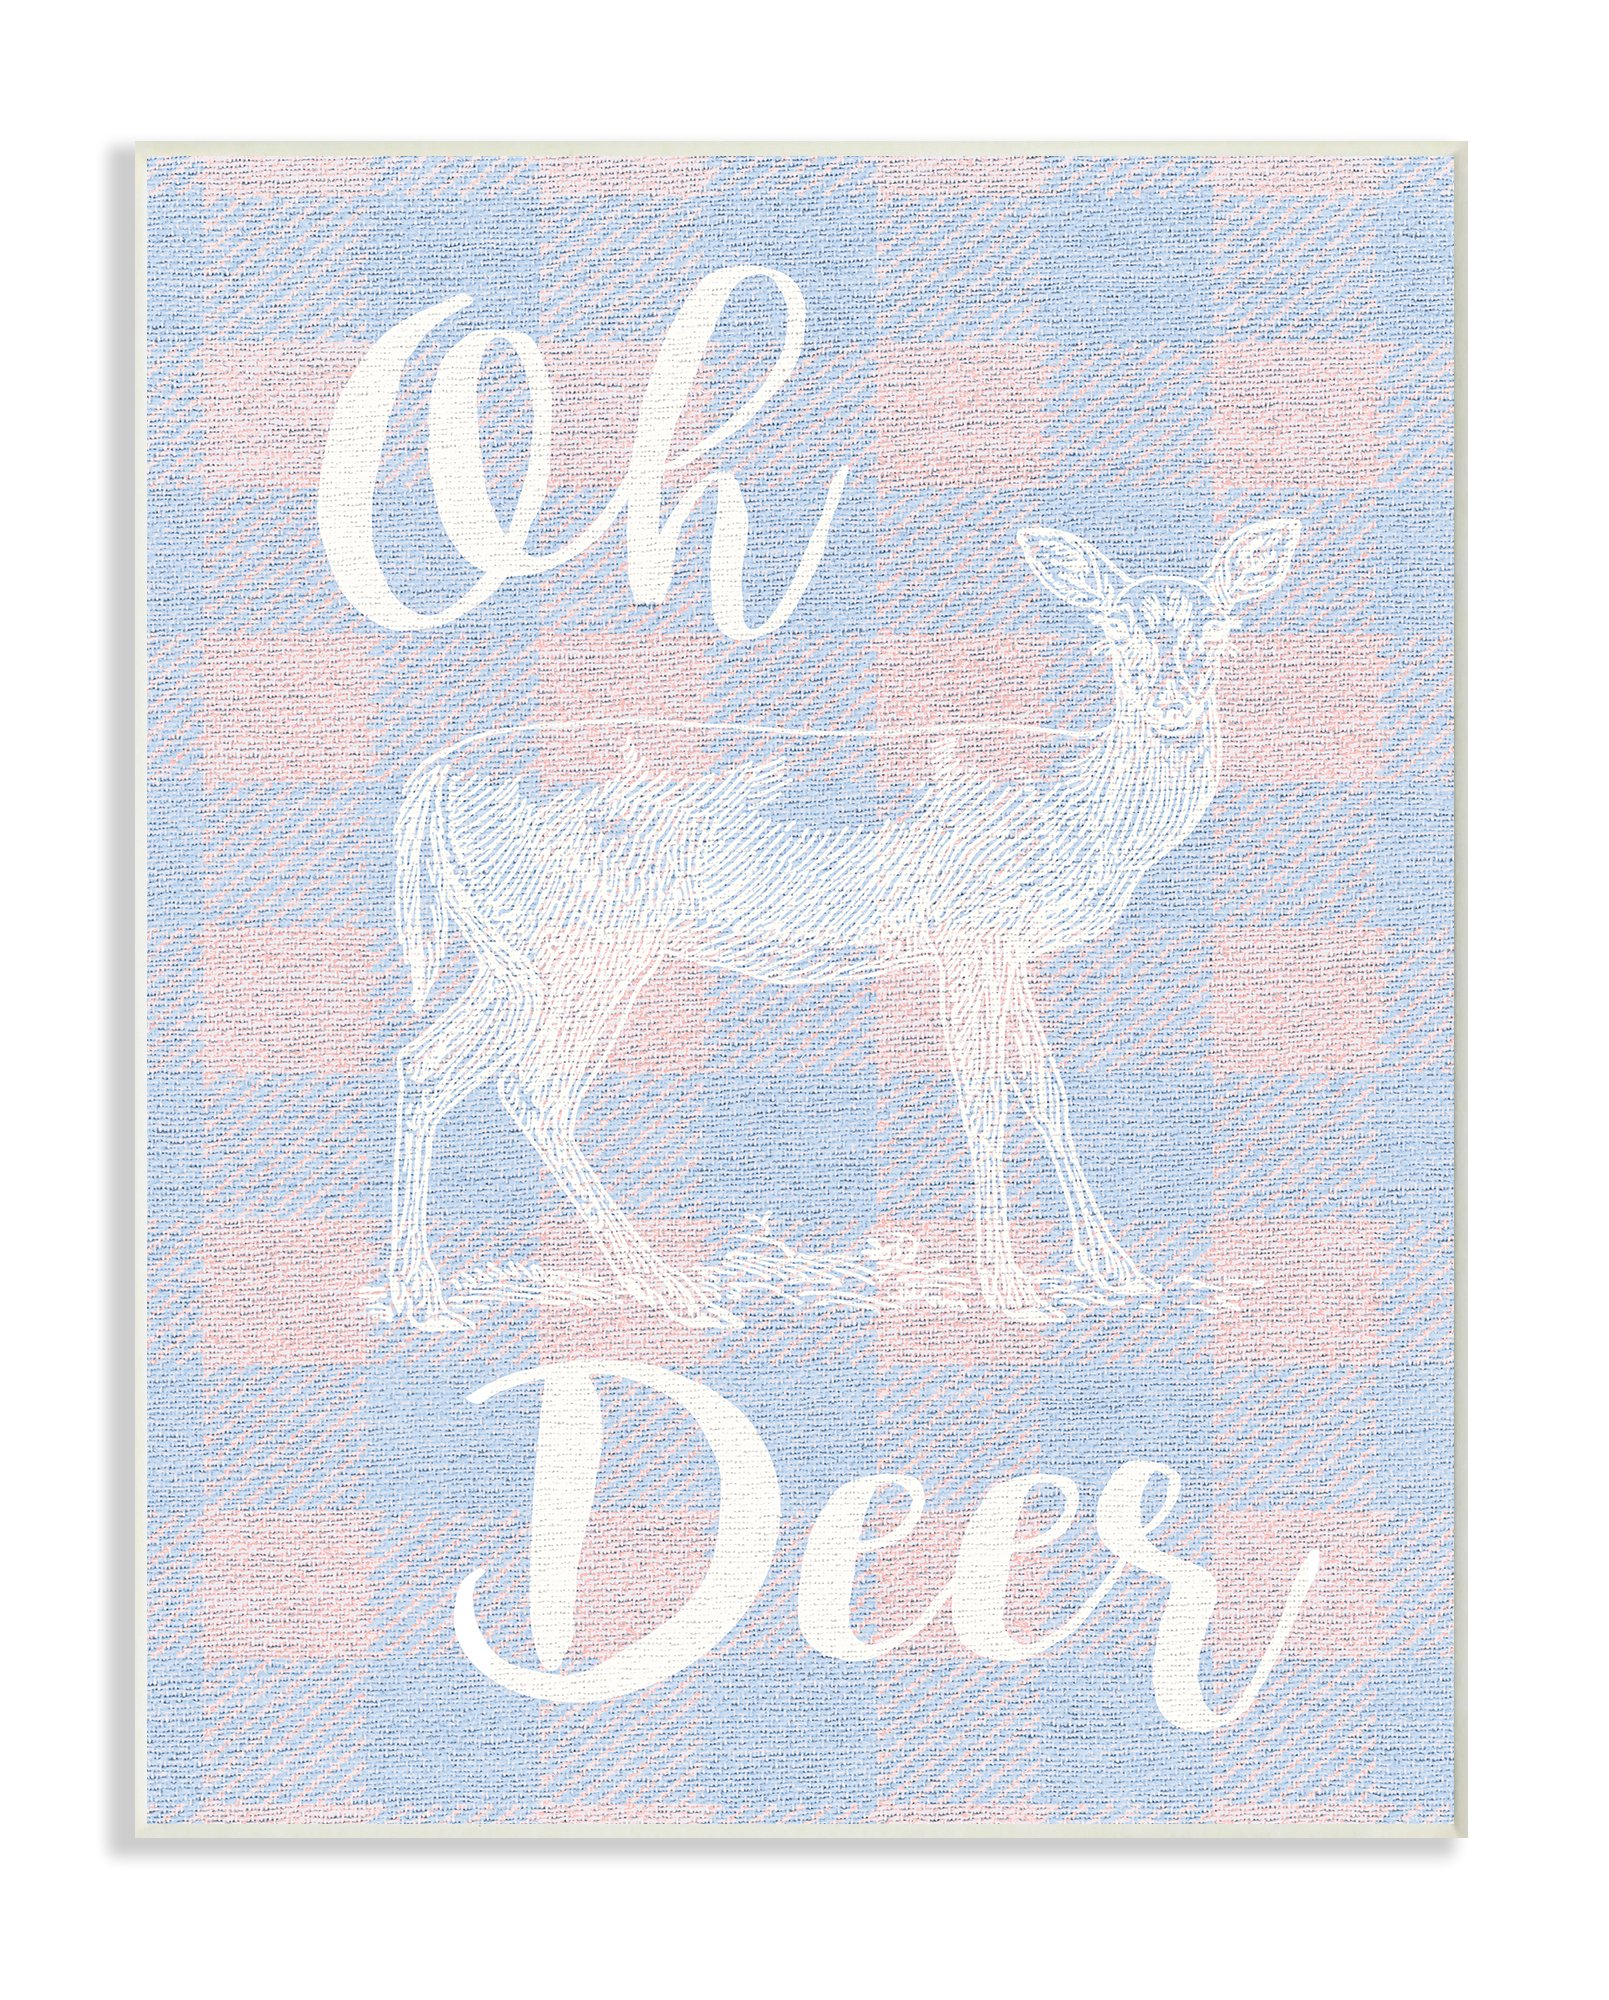 Stupell Industries Oh Deer White Stamp on Pink Plaid Wall Plaque Art, 10 x 0.5 x 15, Proudly Made in USA